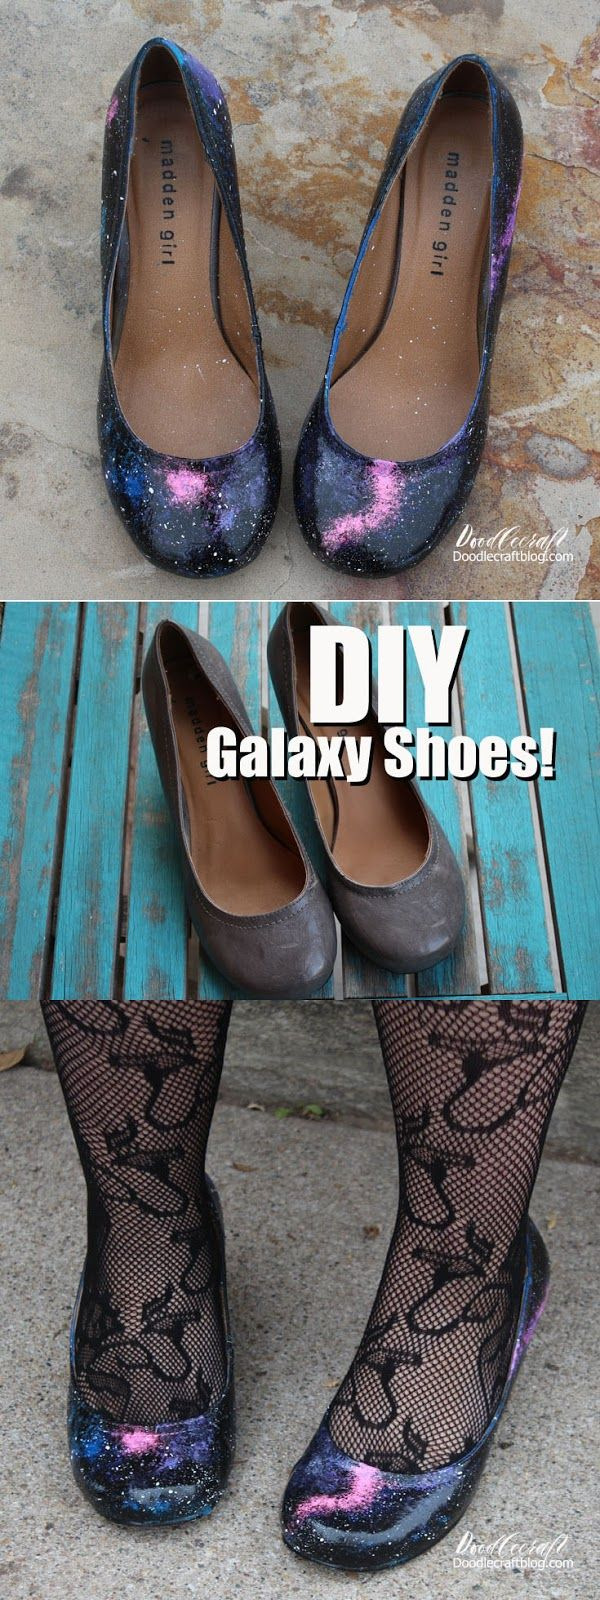 DIY Upcycle Galaxy Shoes!  Take some old heels and make them amazing!  The entire galaxy can revolve around you!